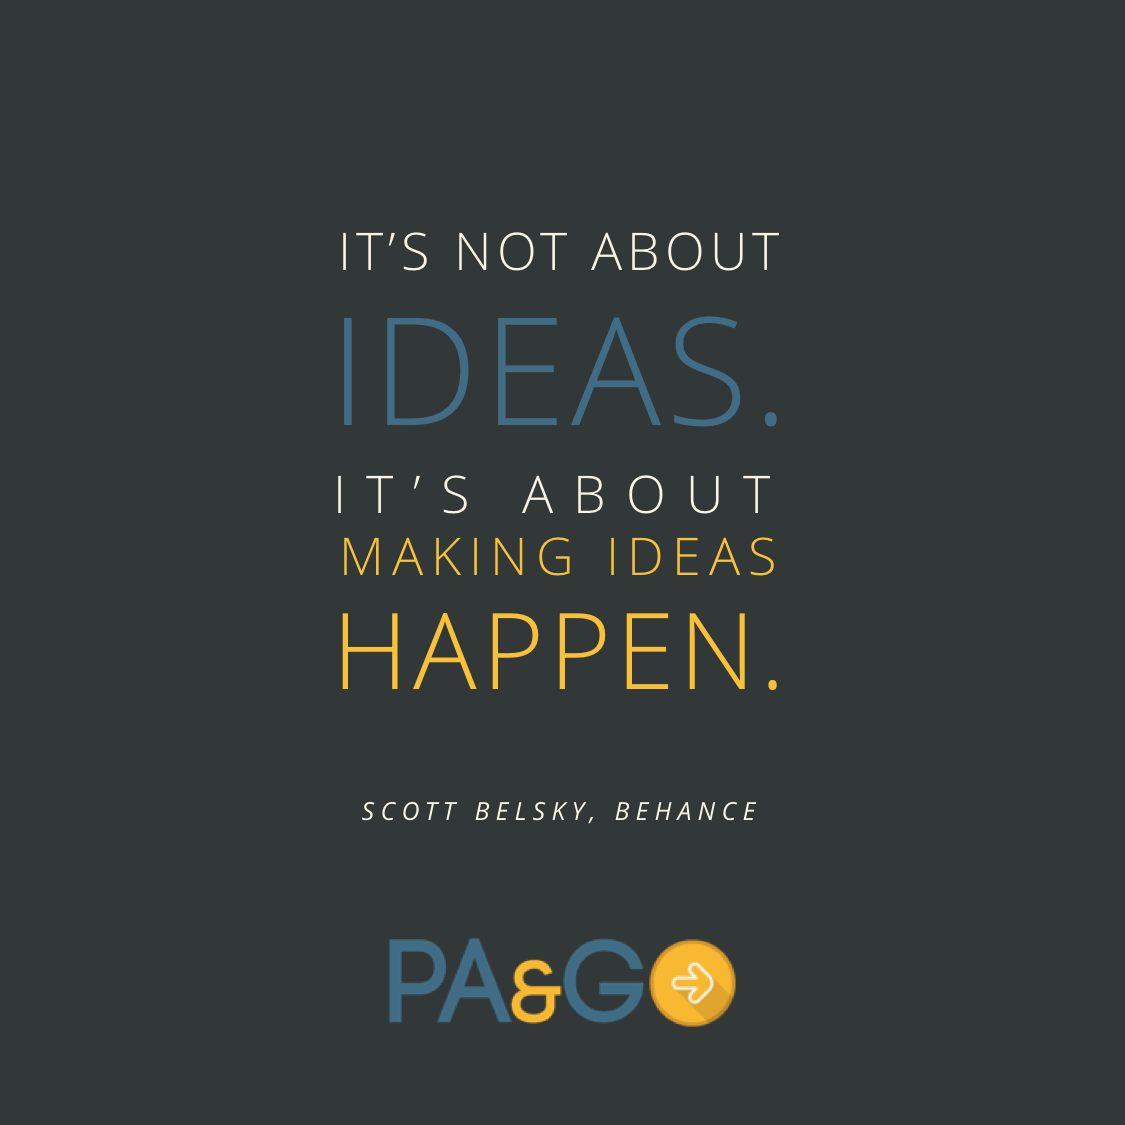 making ideas happen scott belsky quote